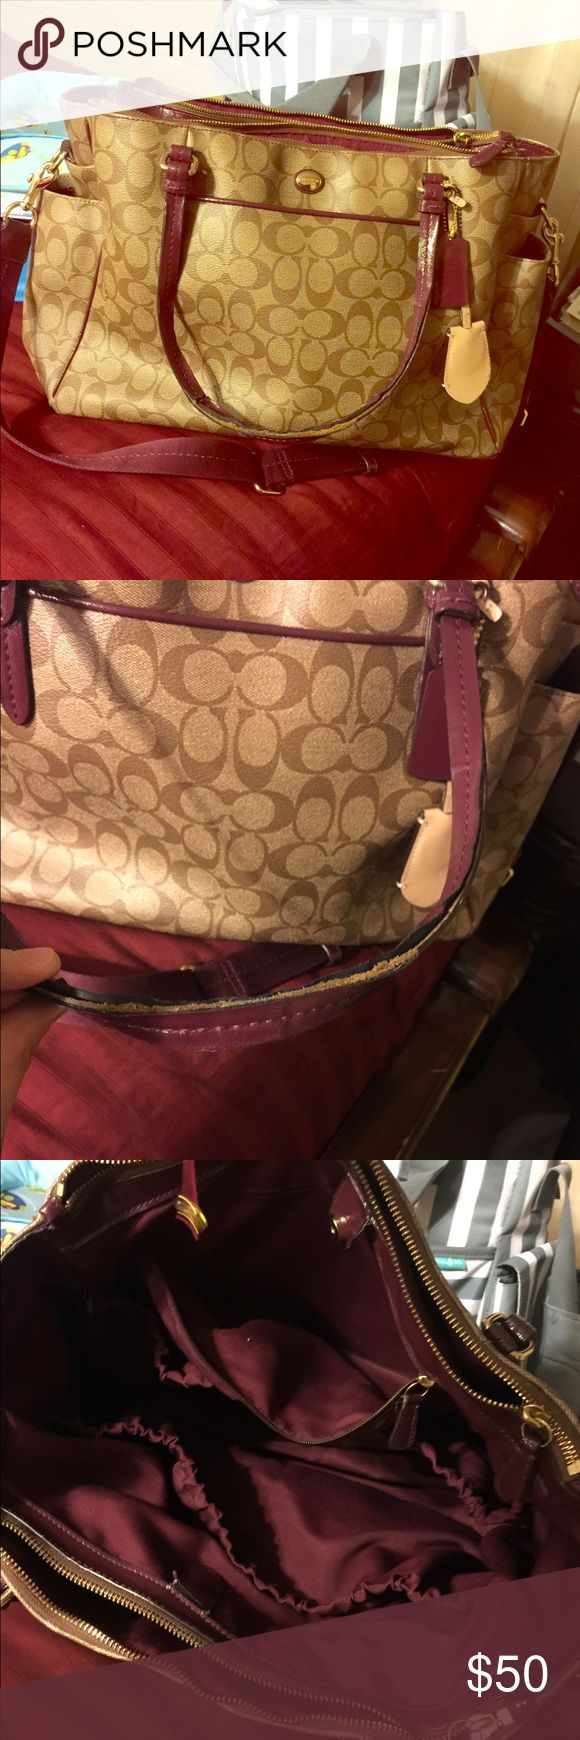 coach diaper bag wear shown on pictures Coach Bags Baby Bags